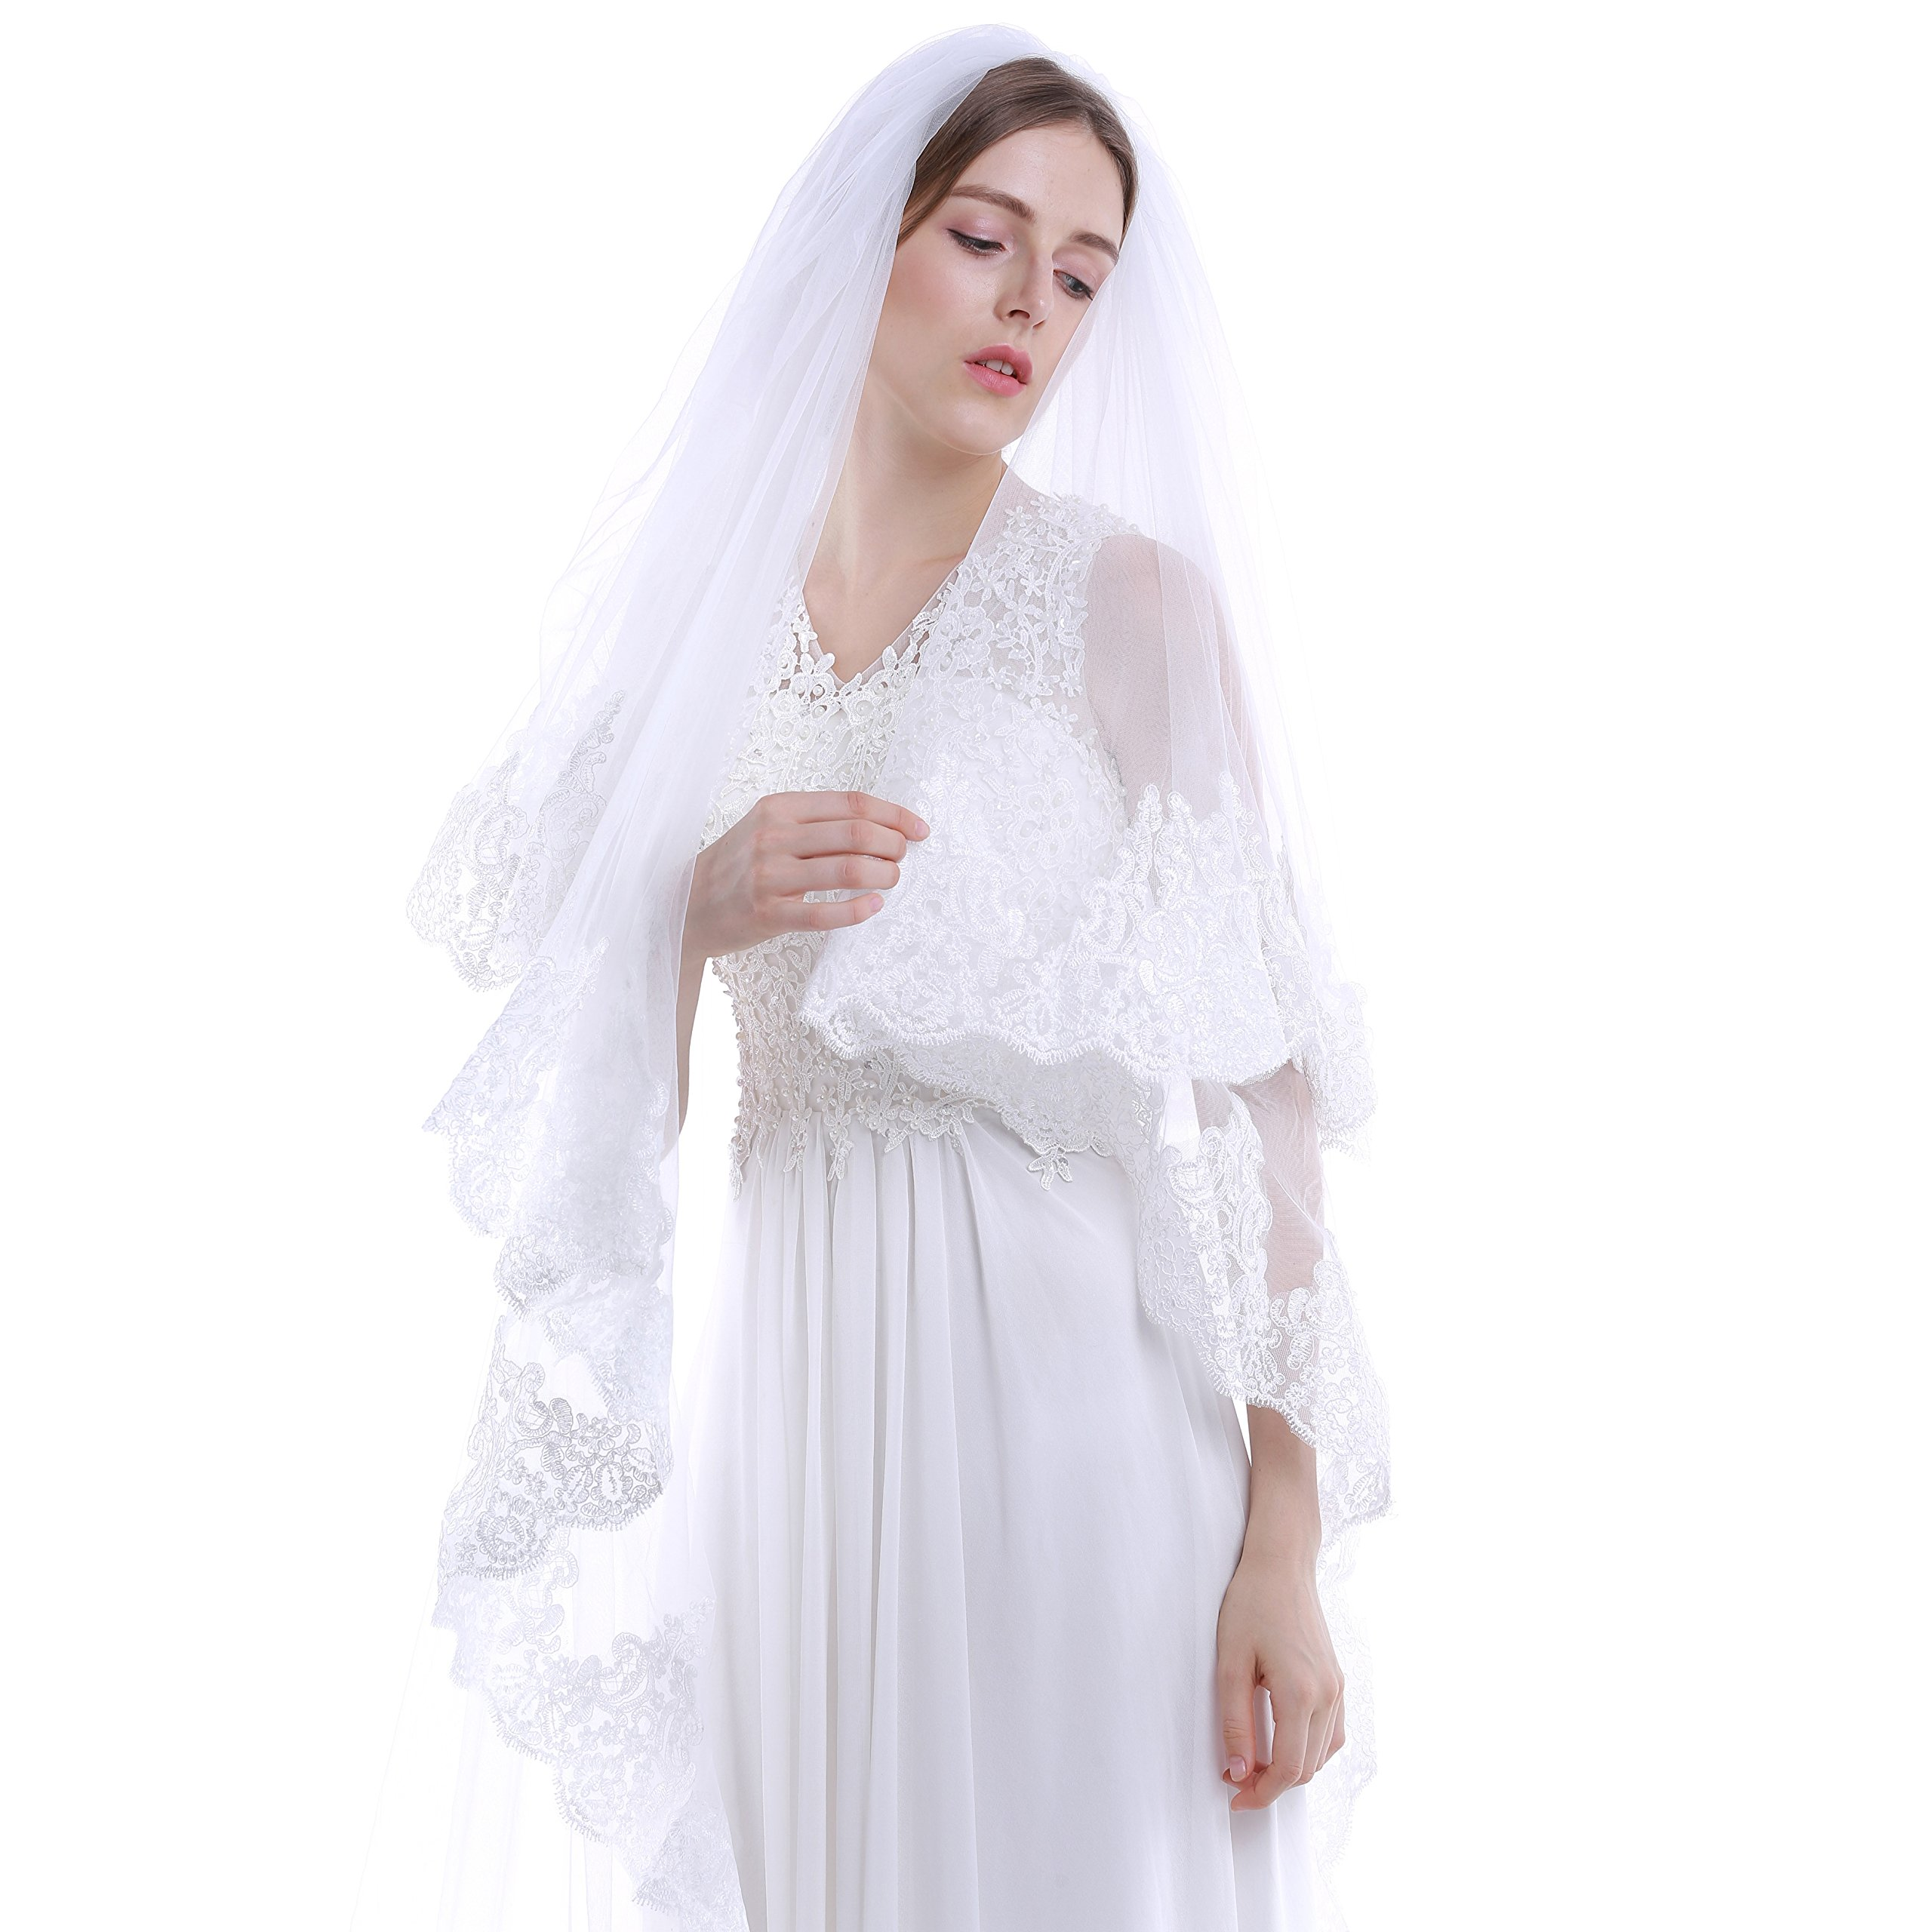 HailieBridal 2 Tiers Lace Edge Chapel Length Wedding Bridal Veil (Off White)